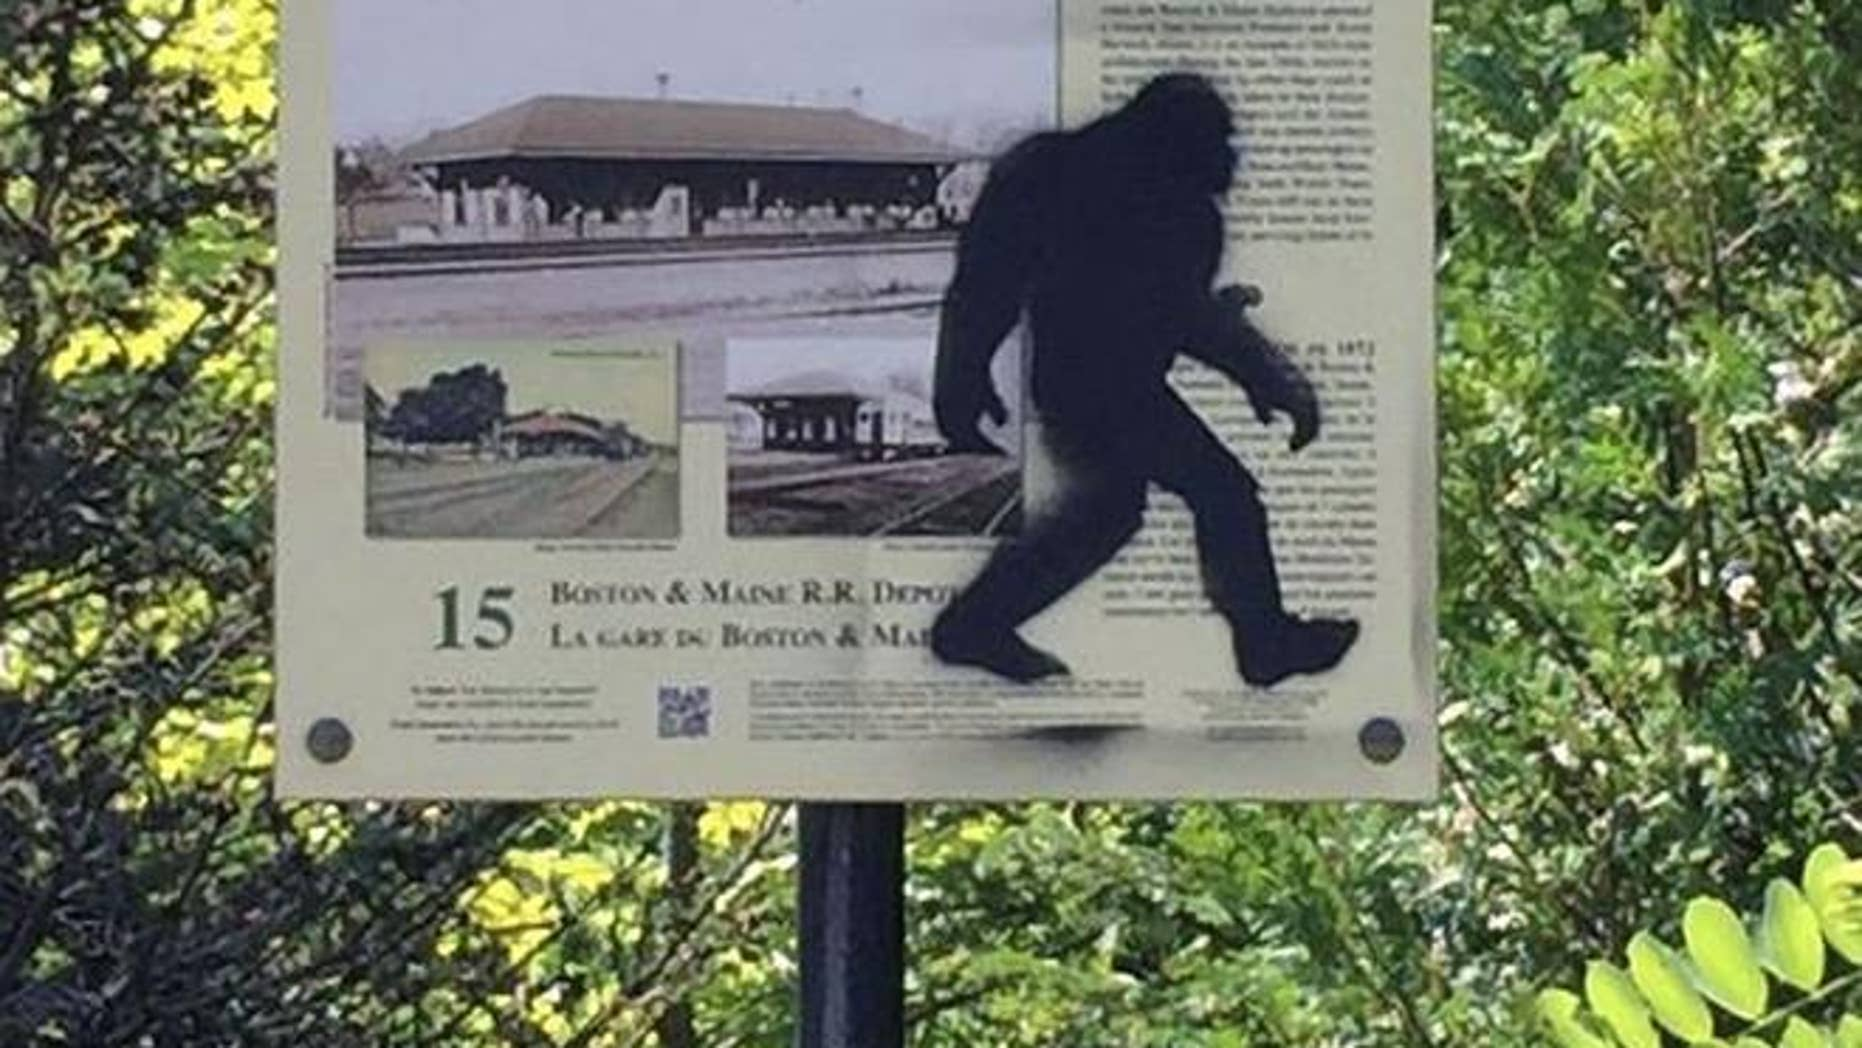 This photo provided by the Kennebunk Police Department shows graffiti on a sign in Kennebunk, Maine. A prankster spray-painted Bigfoot on town signs.